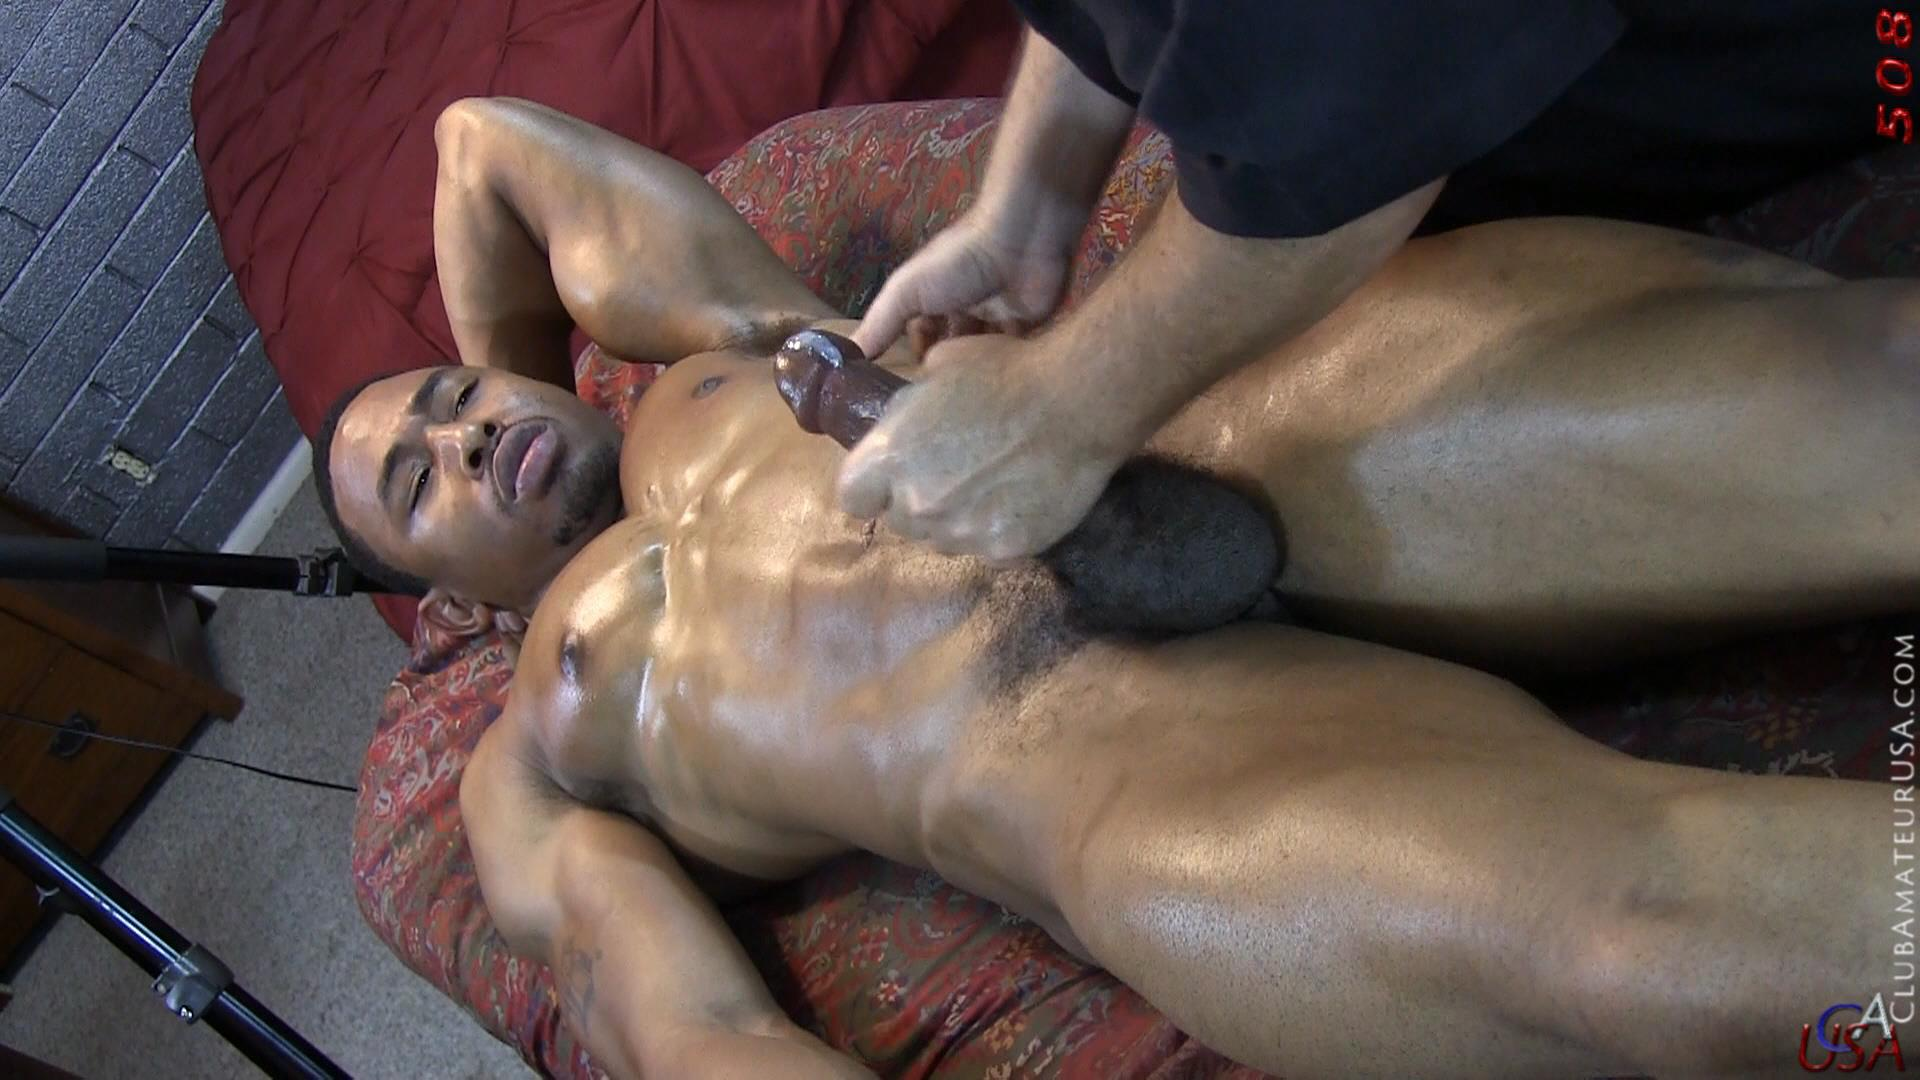 Club-Amateur-USA-Gracen-Straight-Big-Black-Cock-Getting-Sucked-With-Cum-Amateur-Gay-Porn-33 Straight Ghetto Thug Gets A Massage With A Happy Ending From A Guy